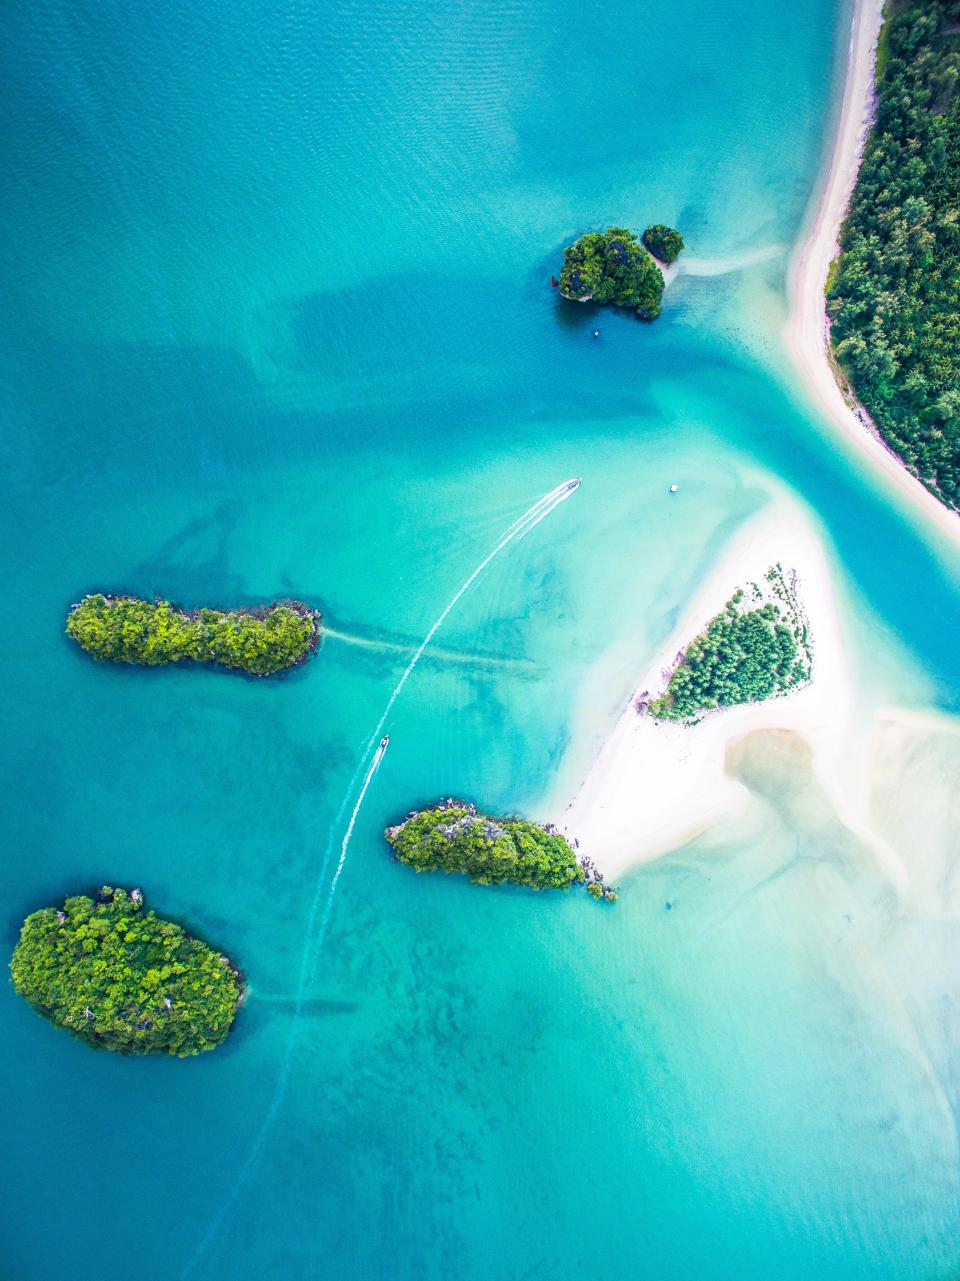 sea ocean blue water nature aerial view tree plant island